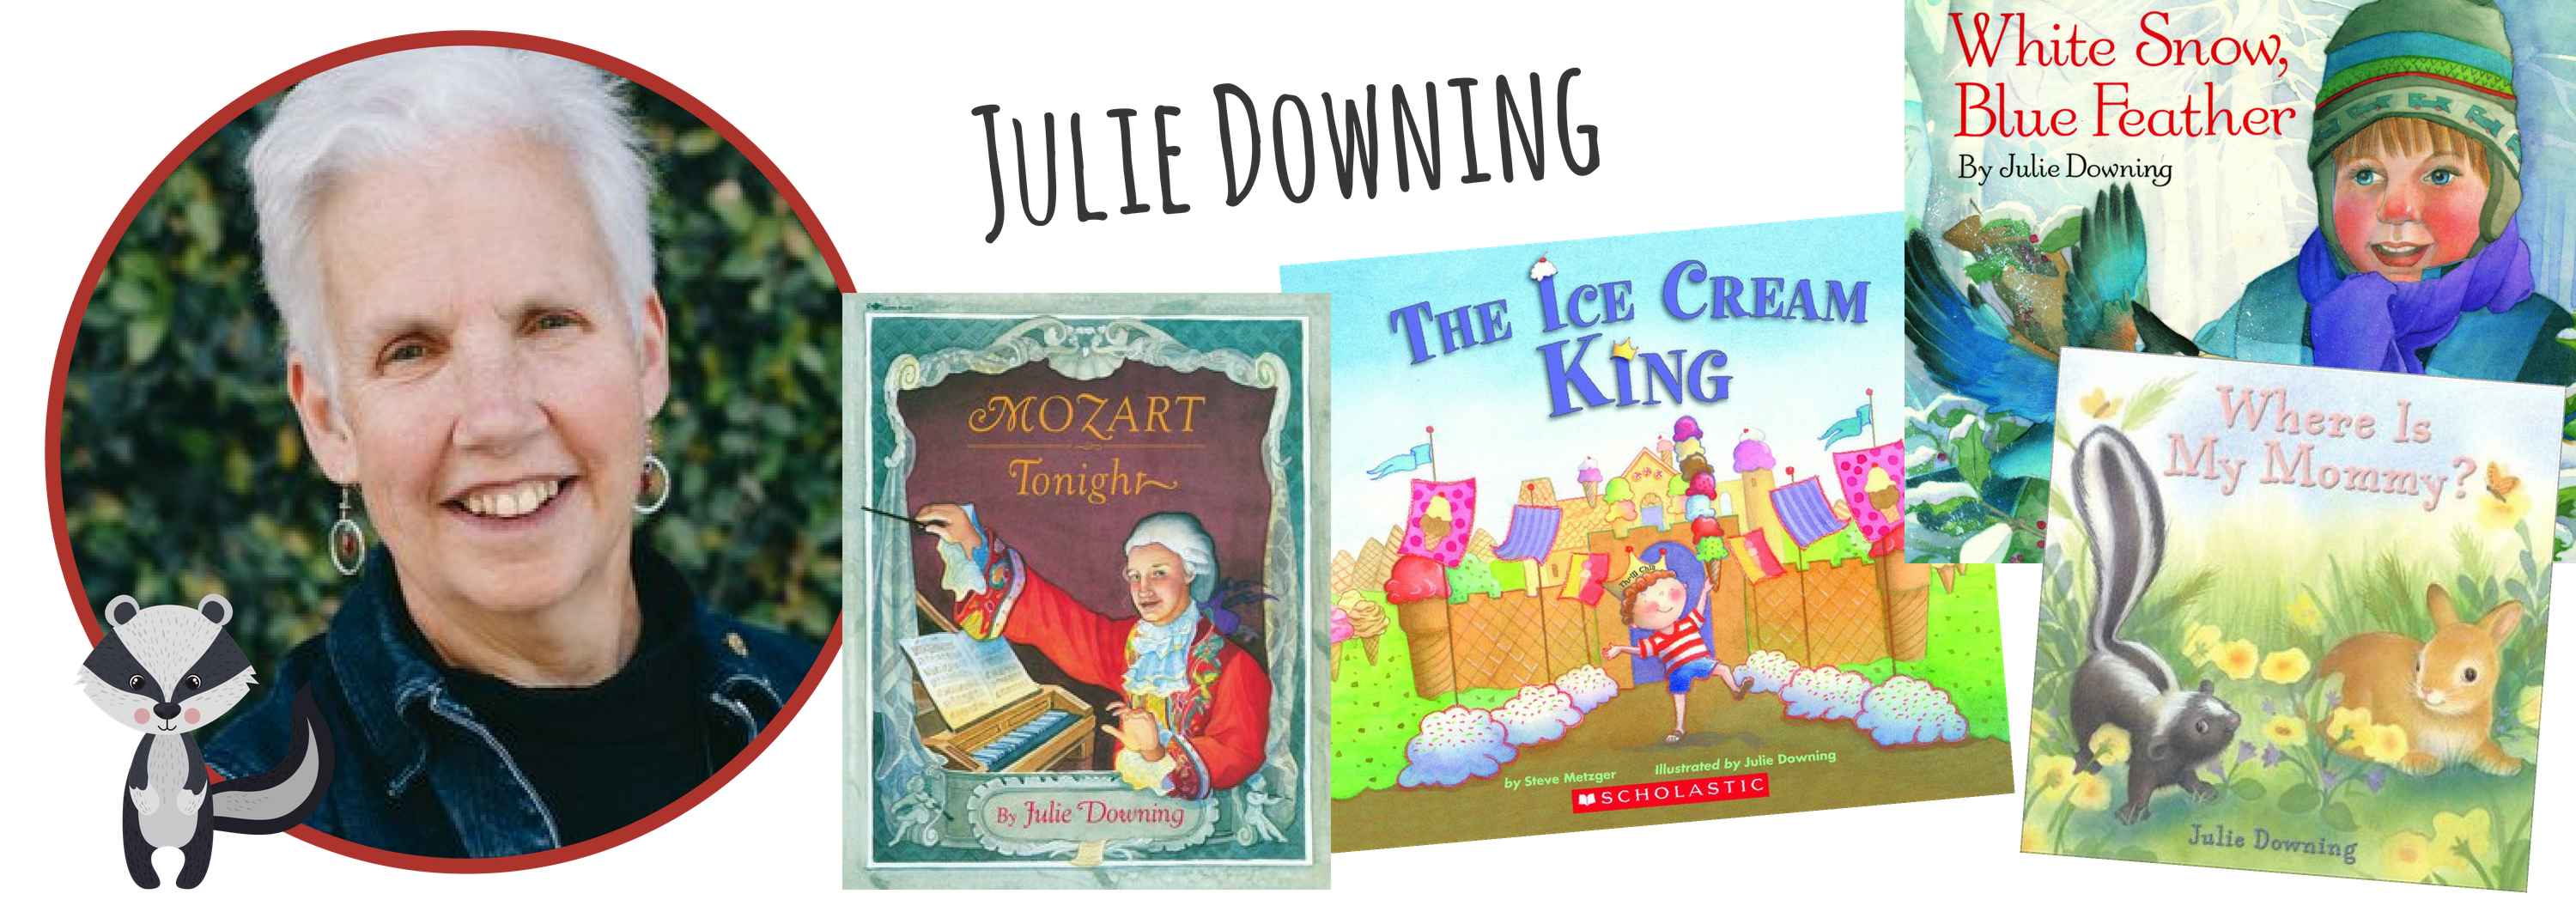 Julie Downing for Children's Book Academy